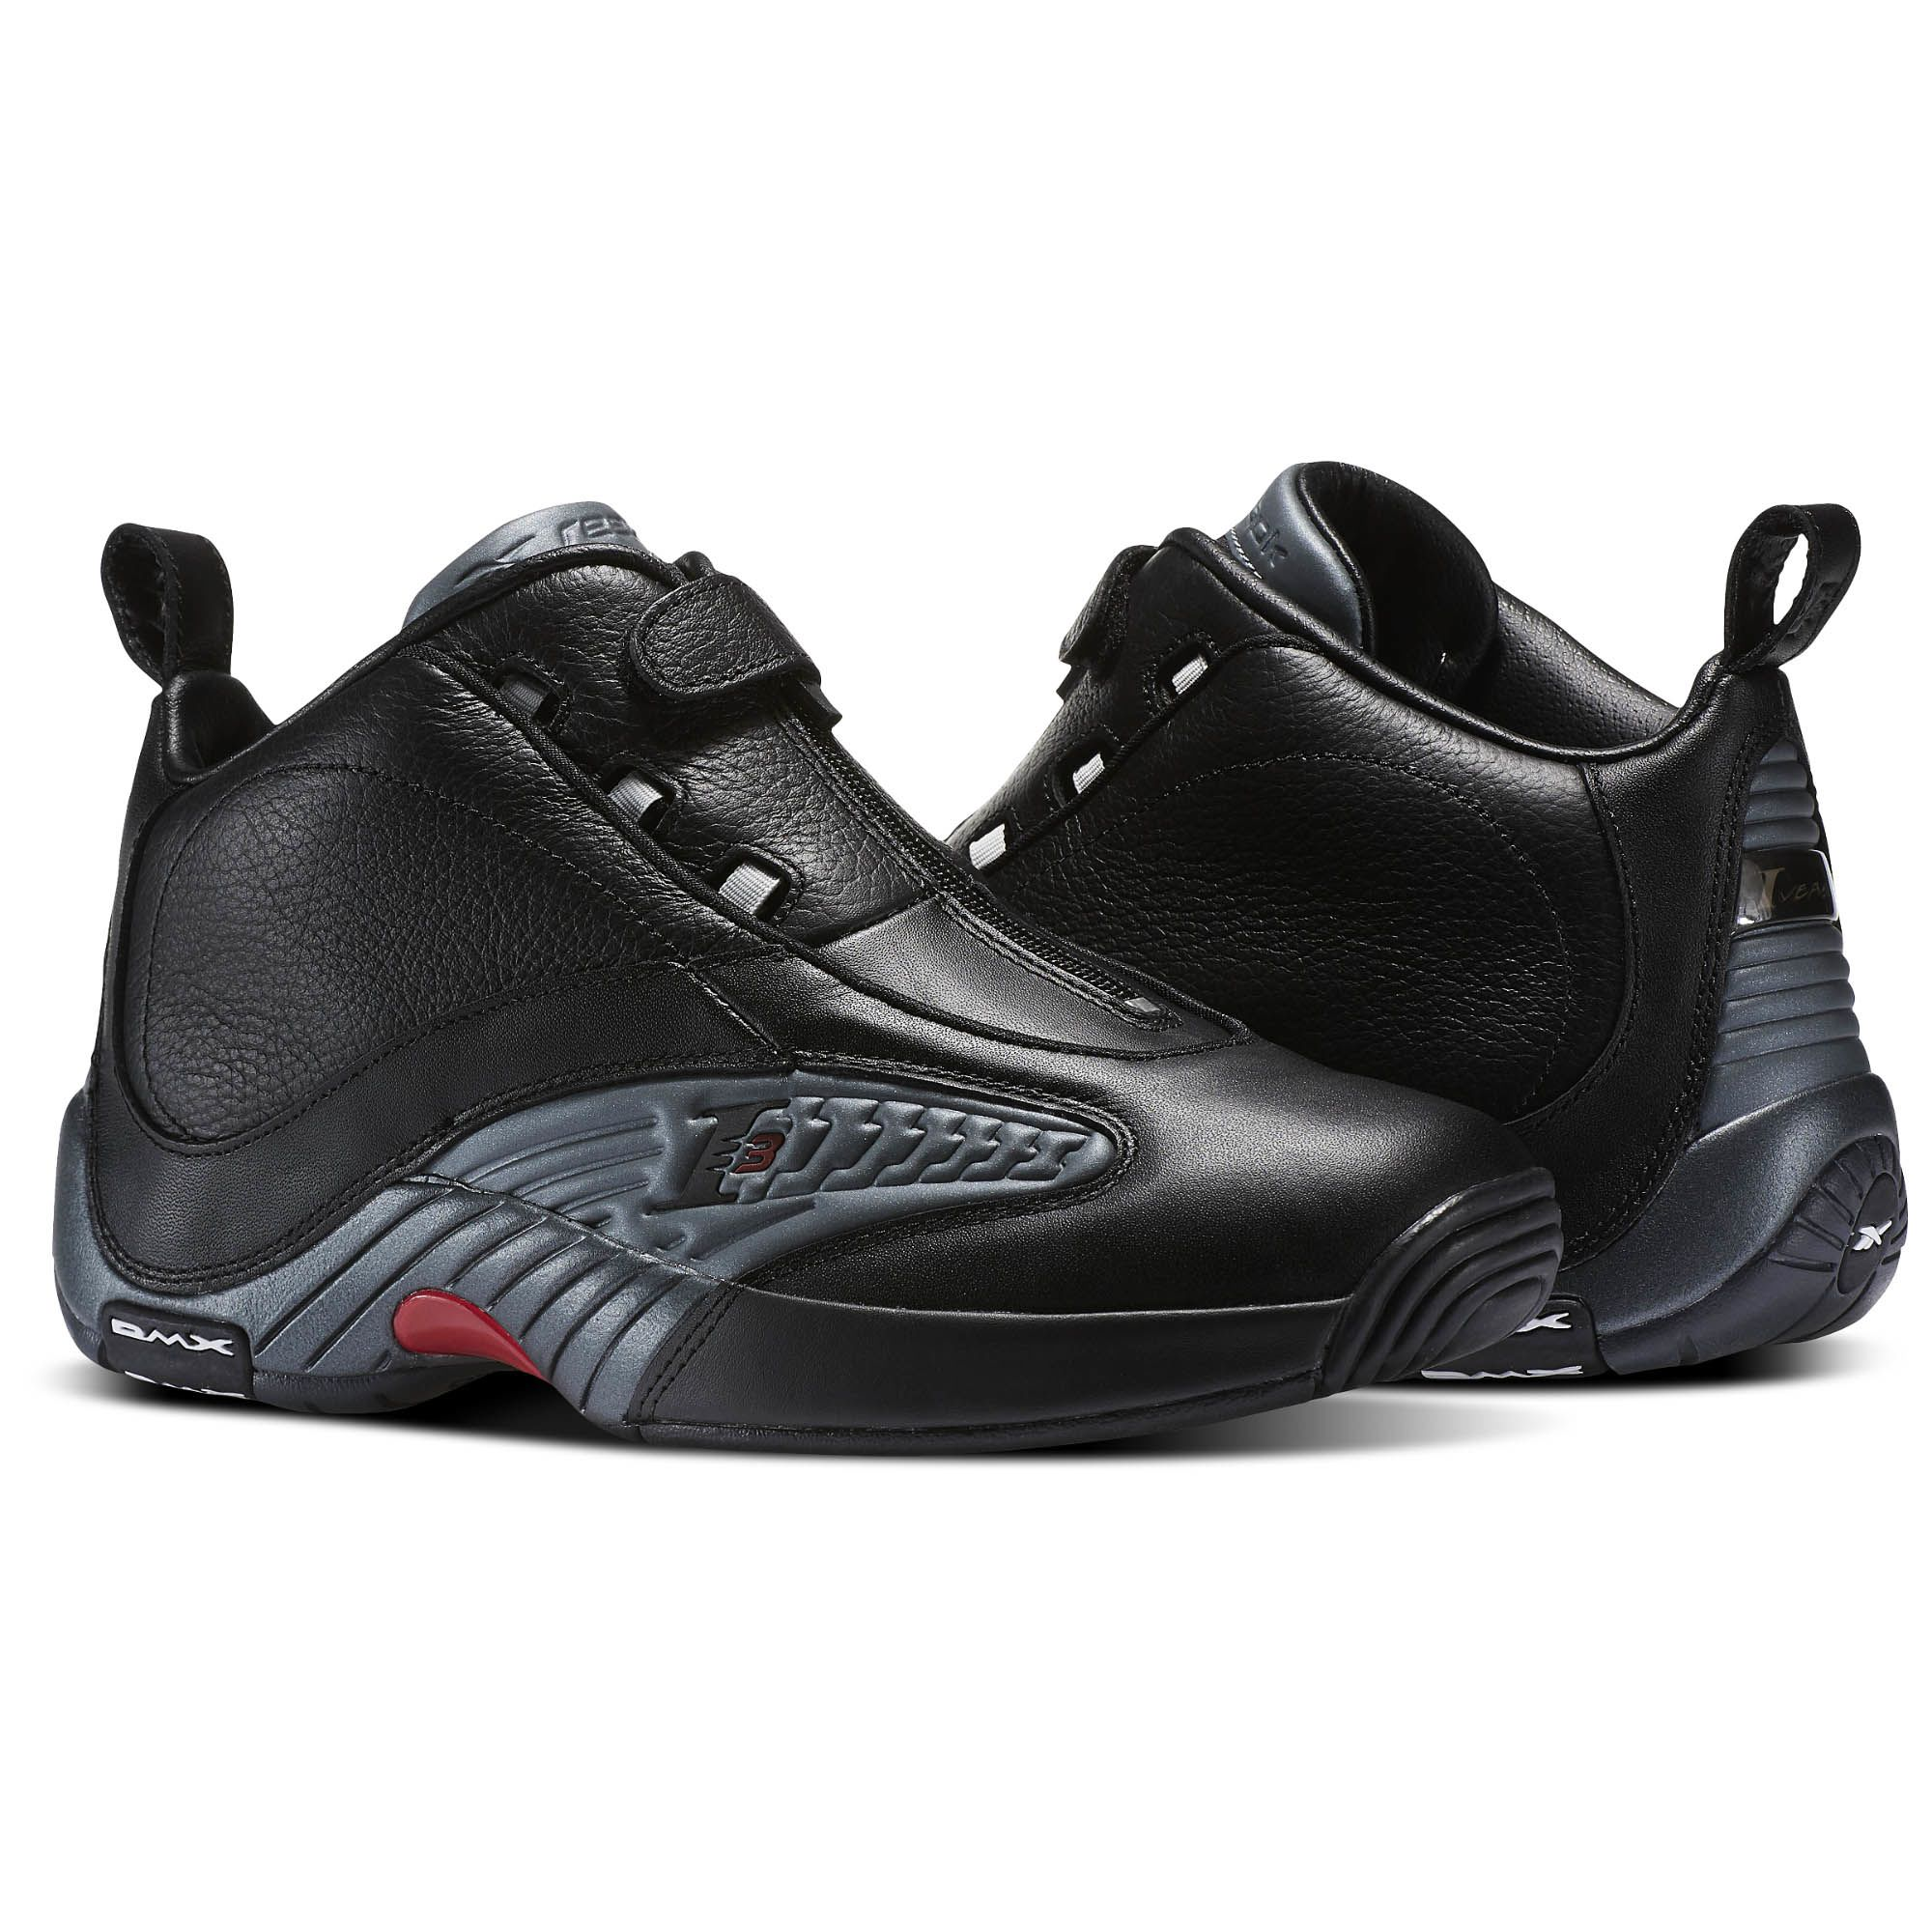 954c2fba2c54 The Limited Edition Reebok Answer IV is Available Now .